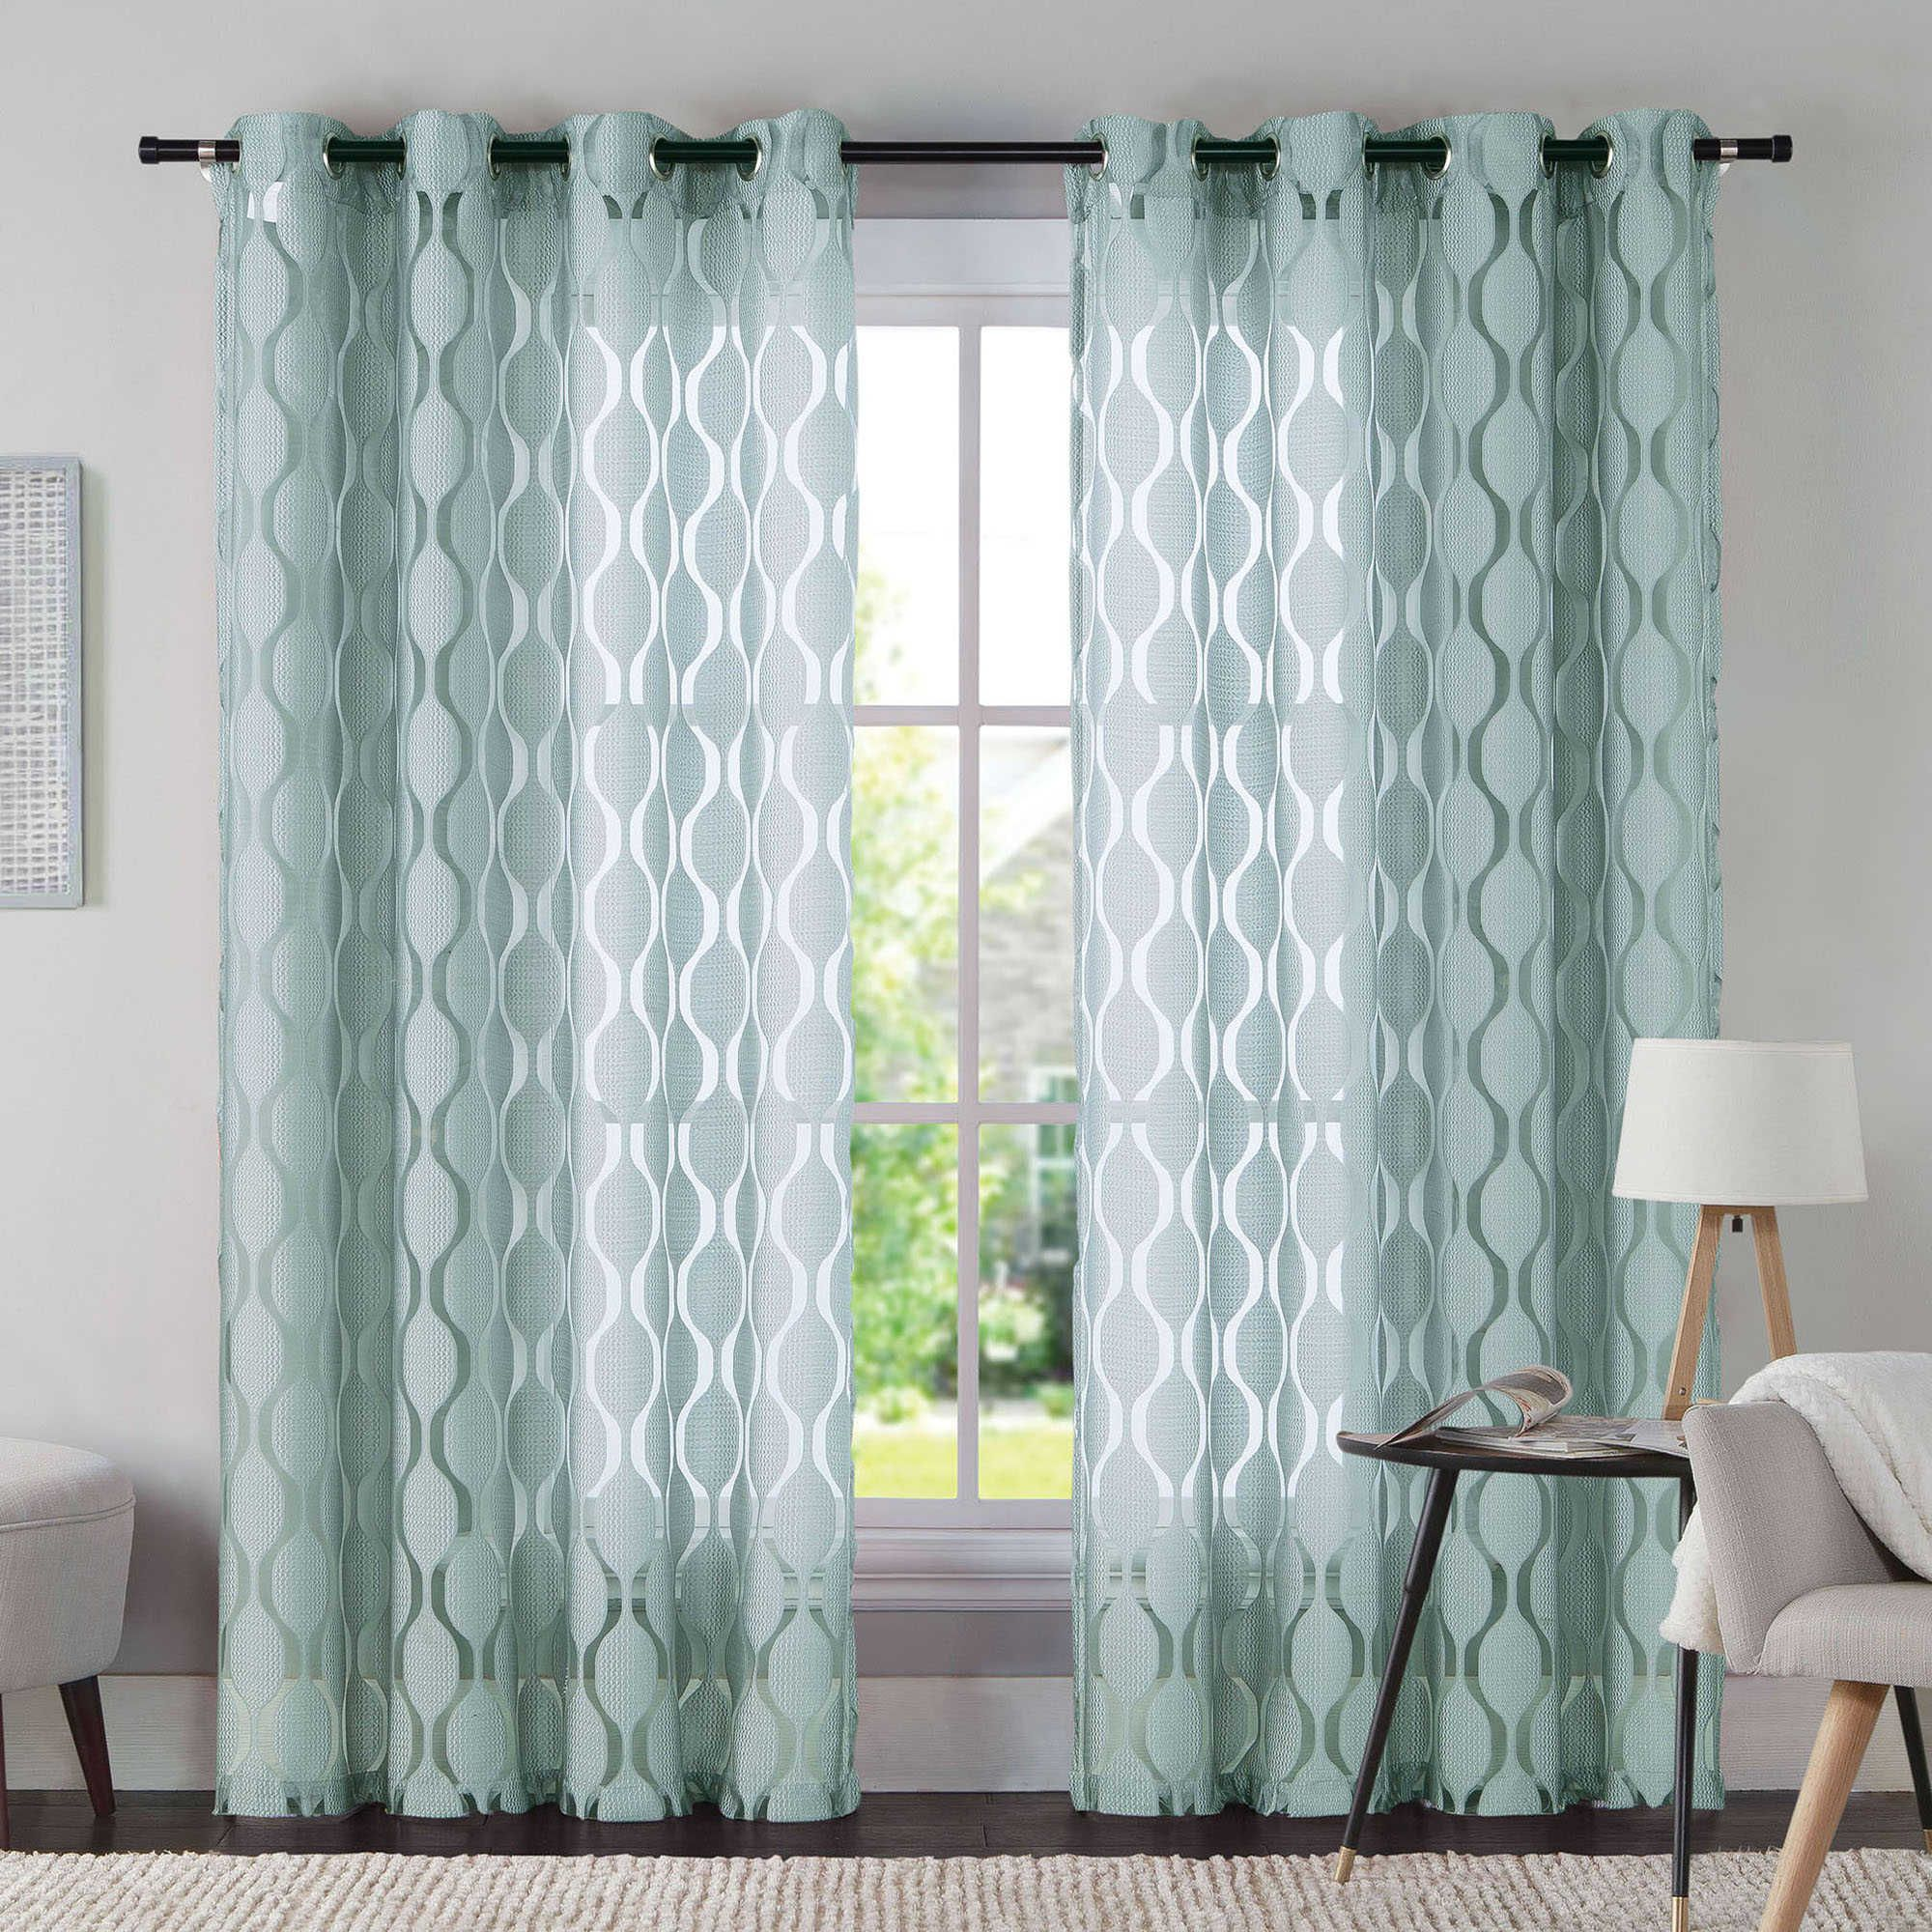 Vcny Aria 95 Inch Window Curtain Panel In Aqua Panel Curtains